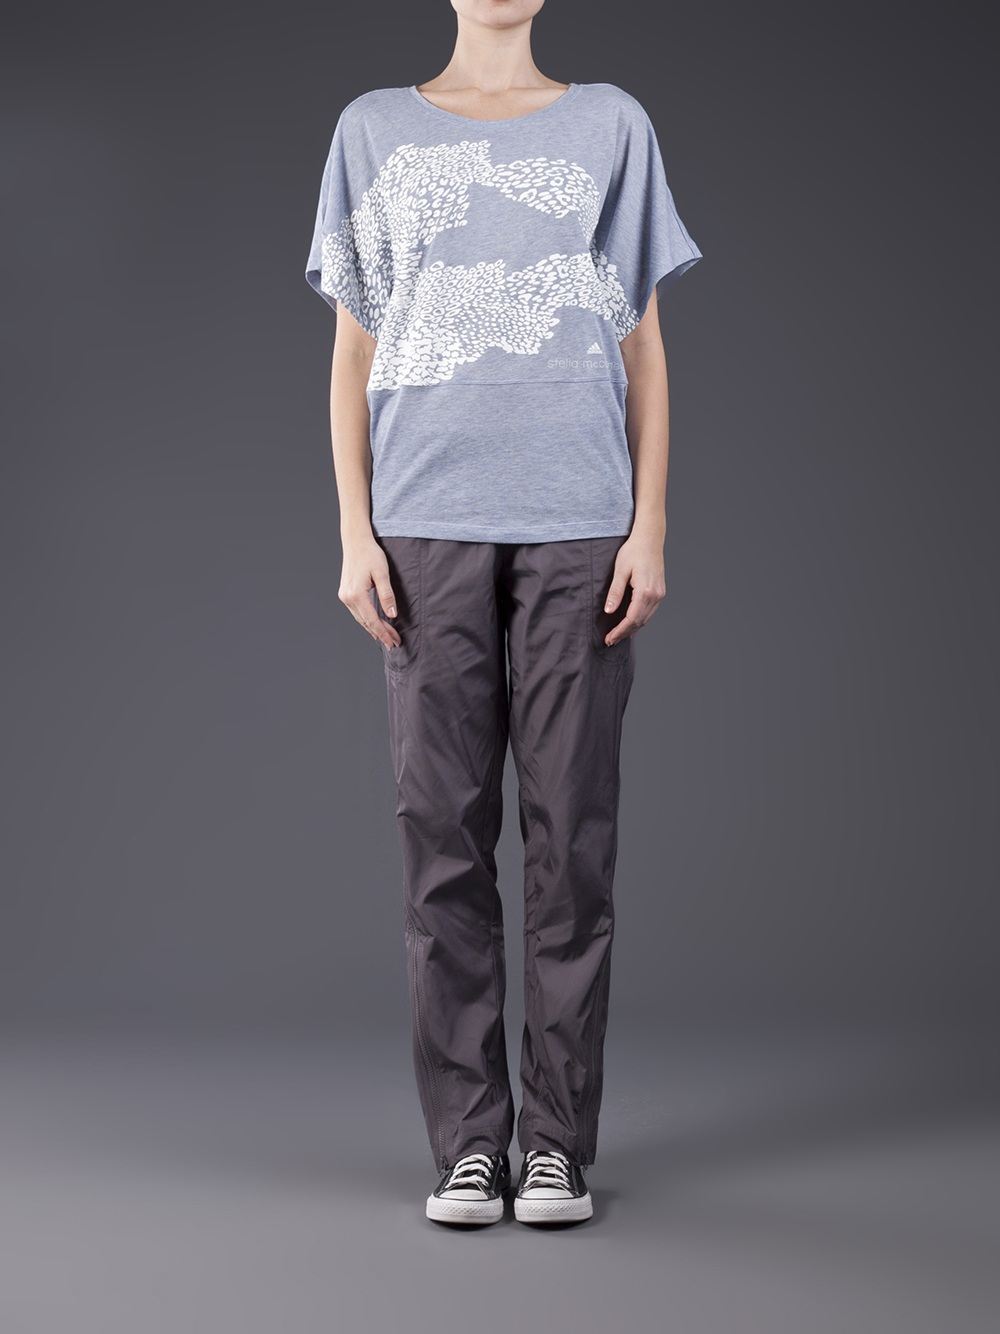 Adidas Stella McCartney Pants Studio Woven in Charcoal Gray Front View